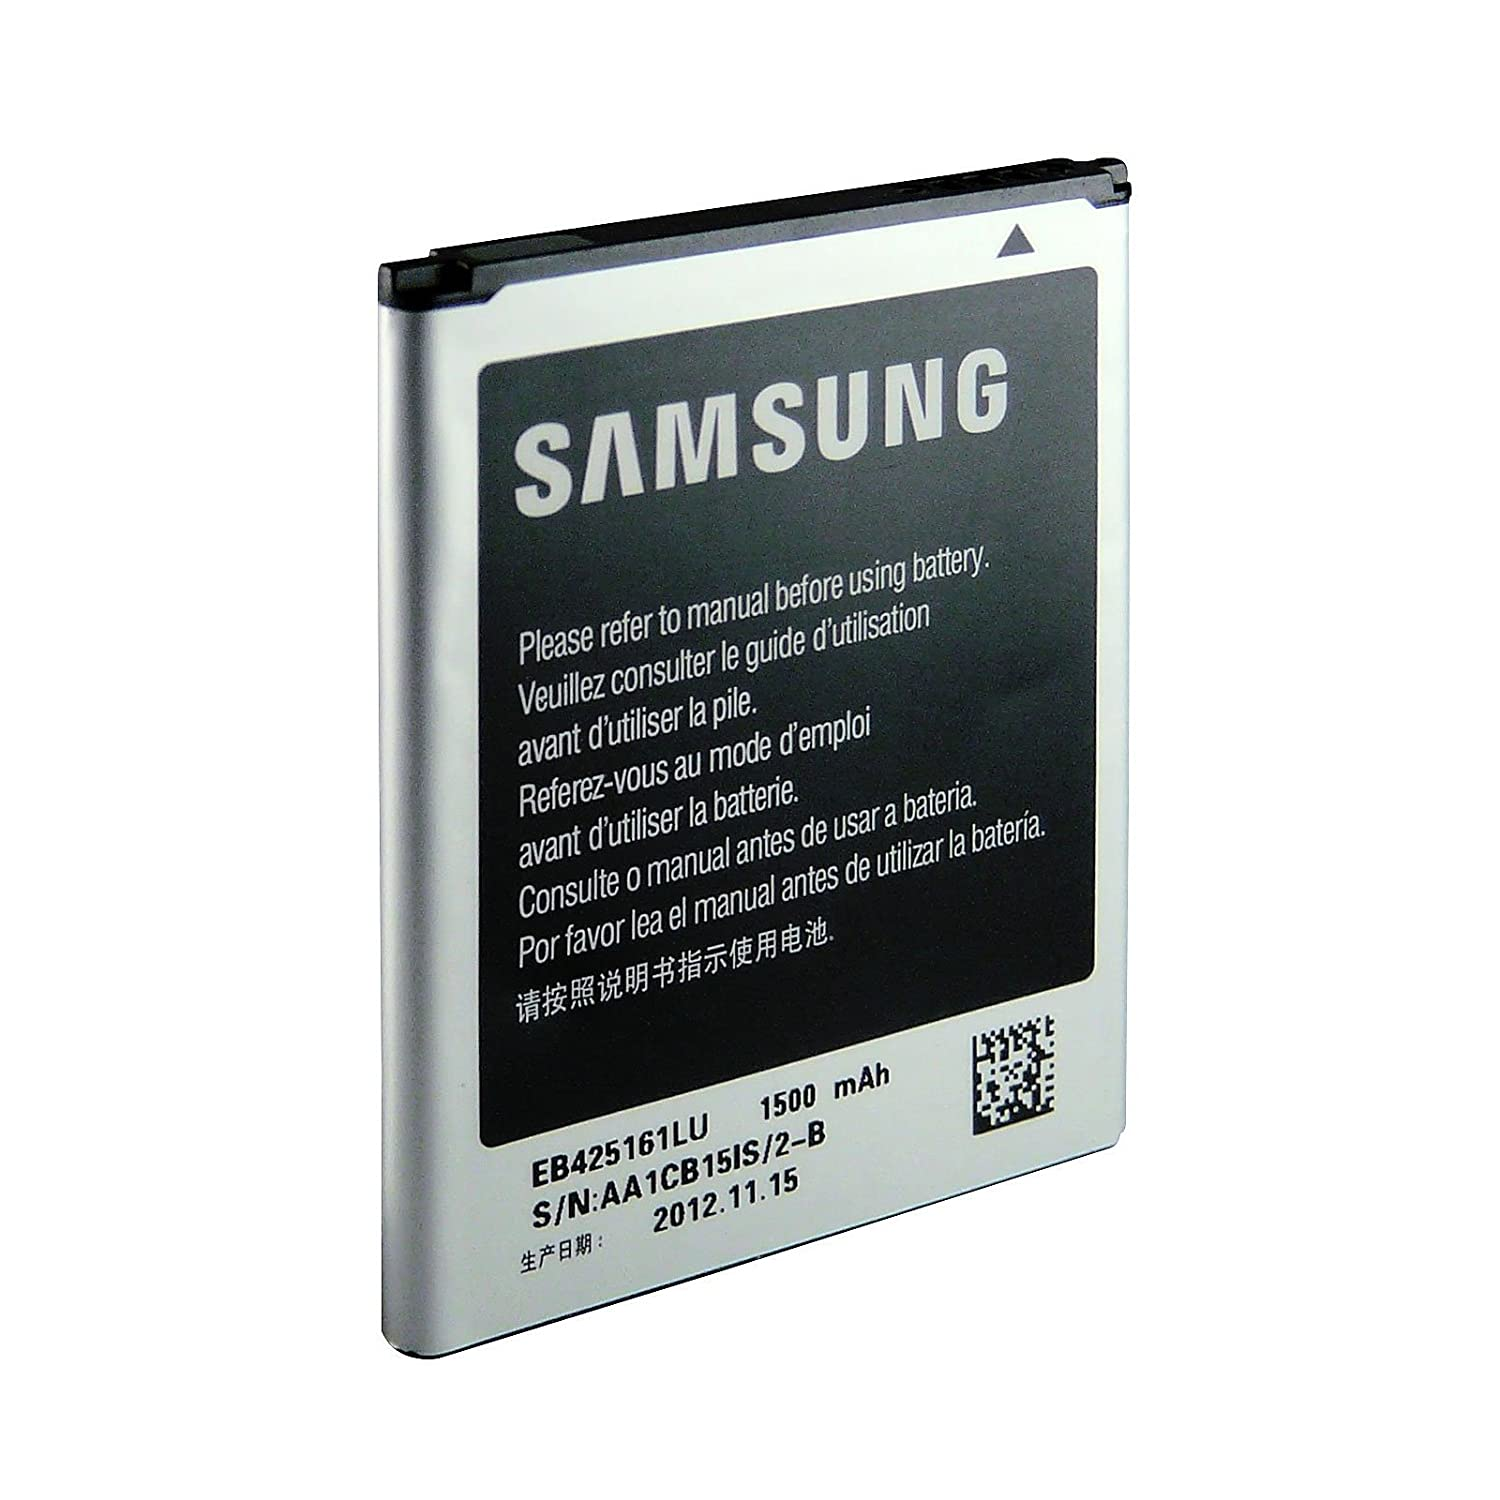 Samsung galaxy s duos s7562 full phone specifications - Ae Mobile Accessories Original Samsung Eb425161lu Battery For Galaxy S Duos S7562 1500mah Amazon In Electronics